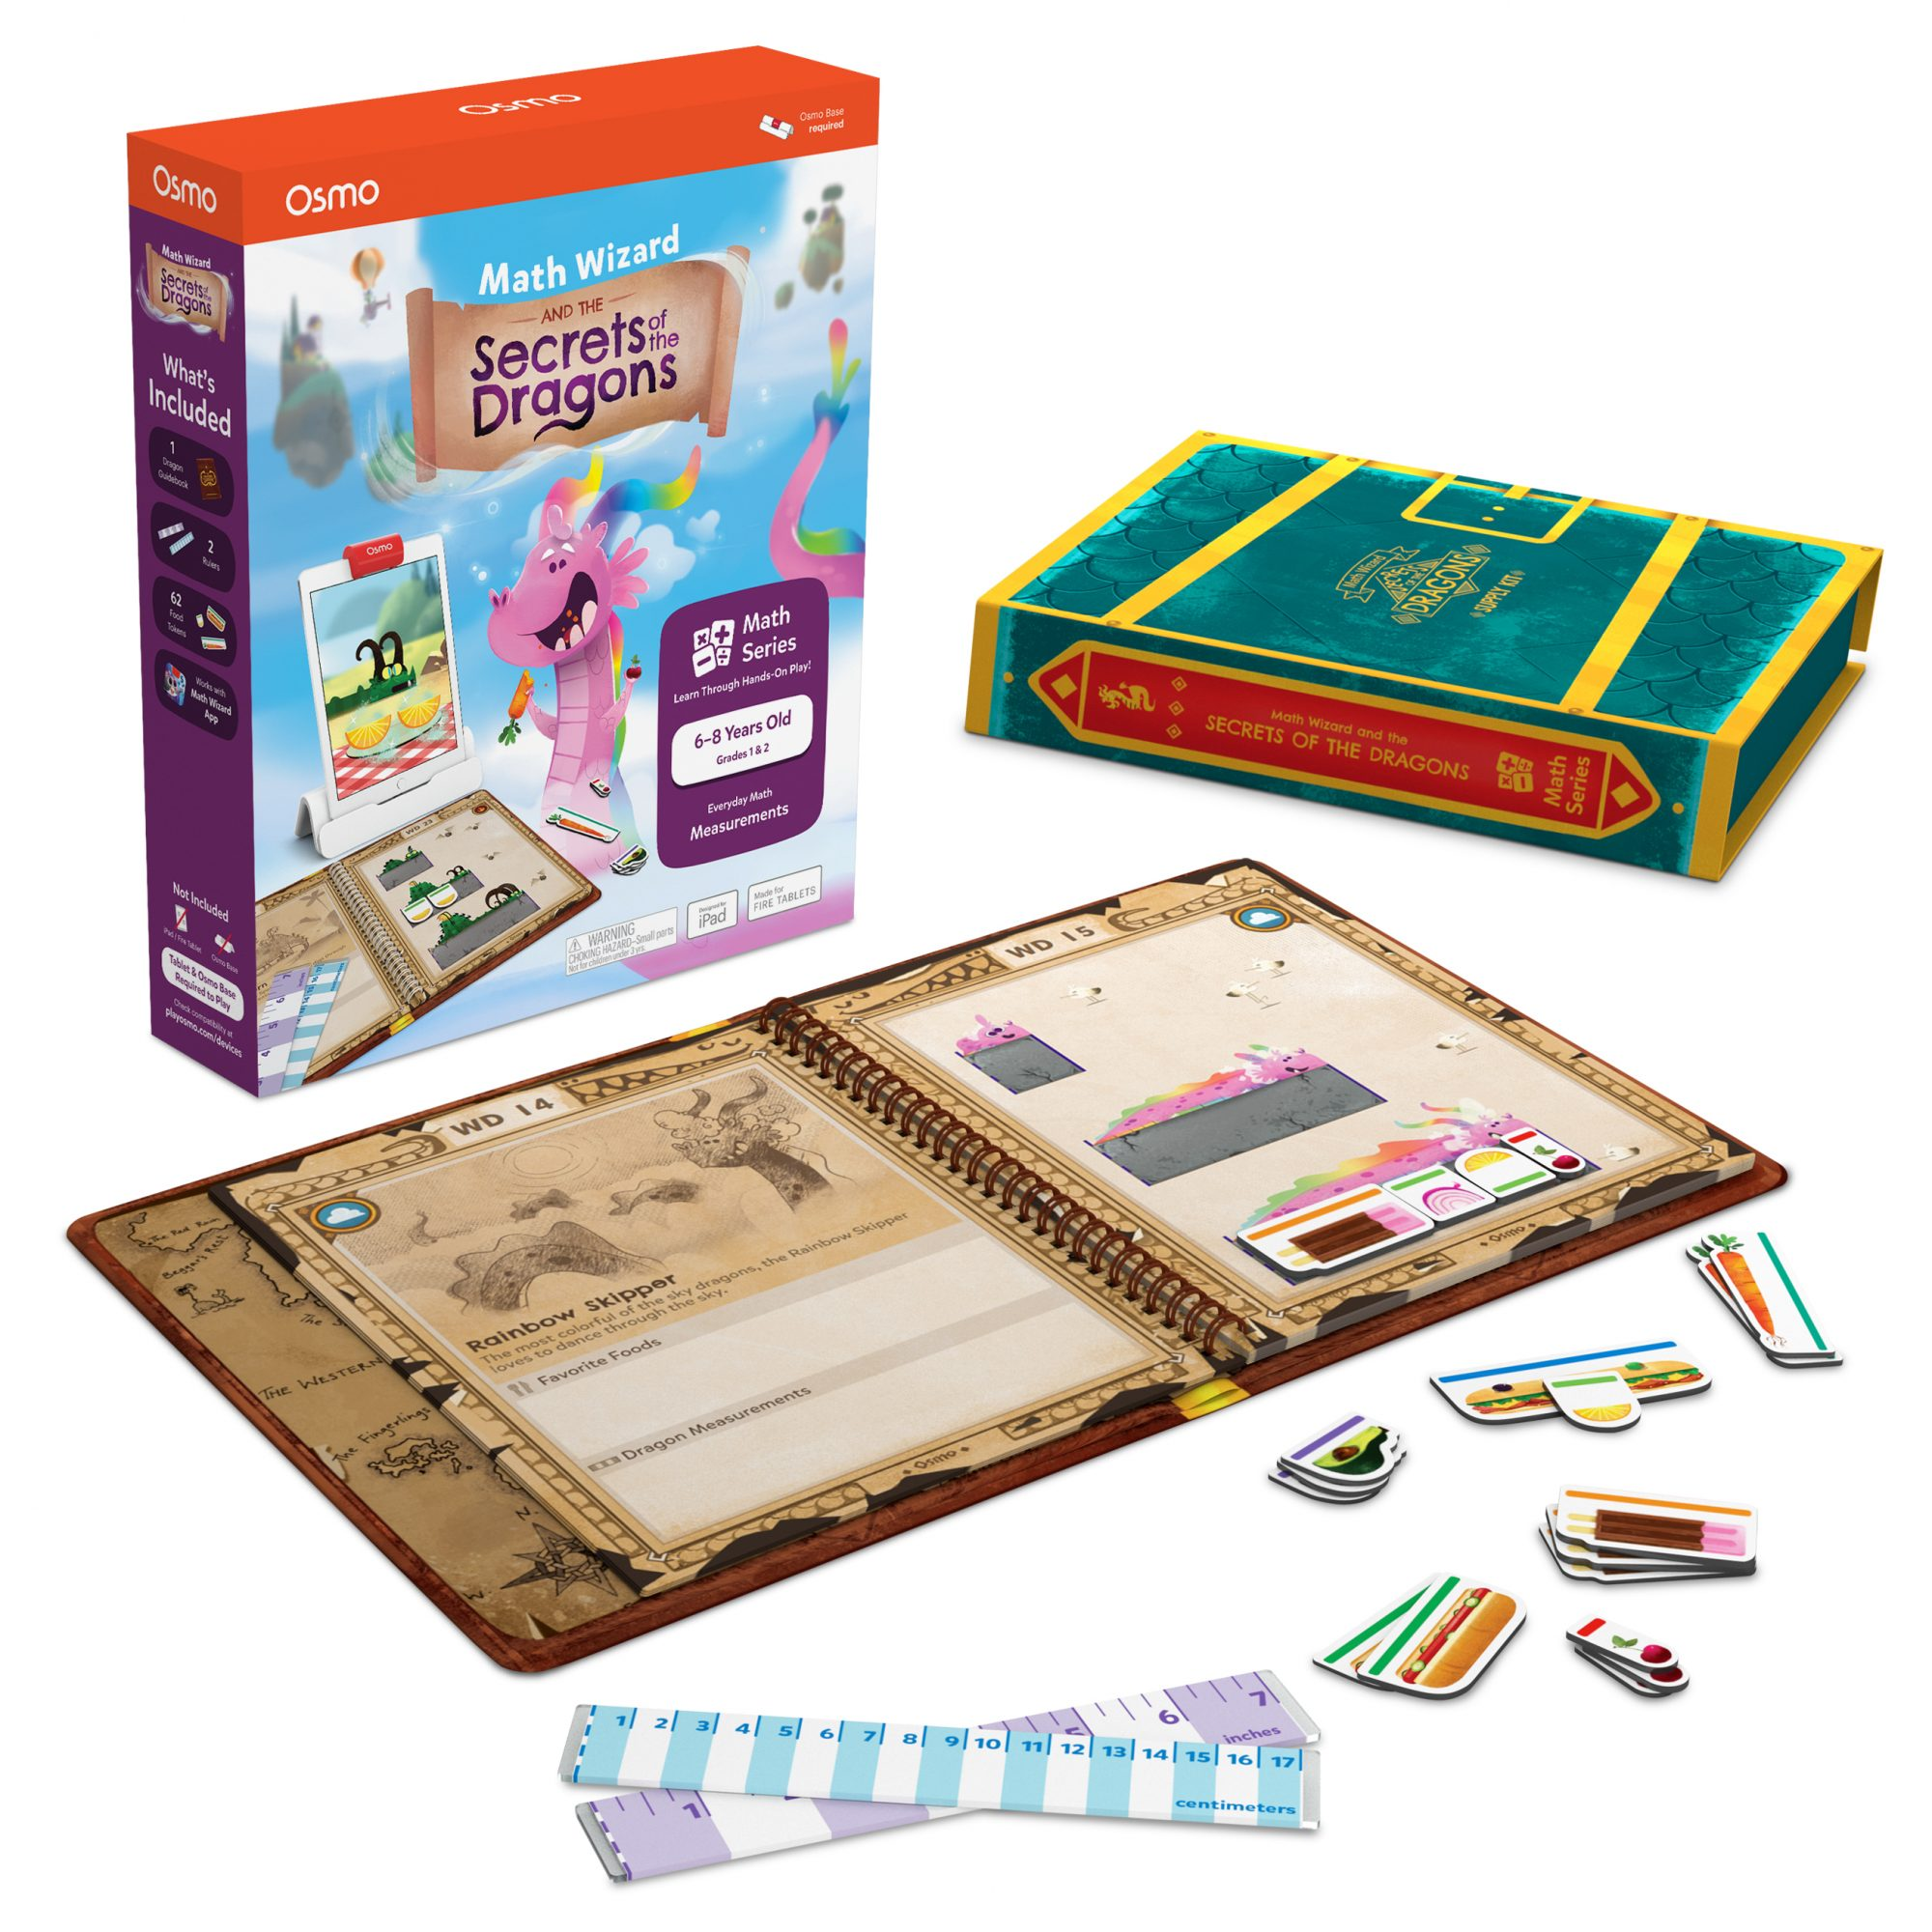 Secrets of the Dragons game box and booklet with game pieces